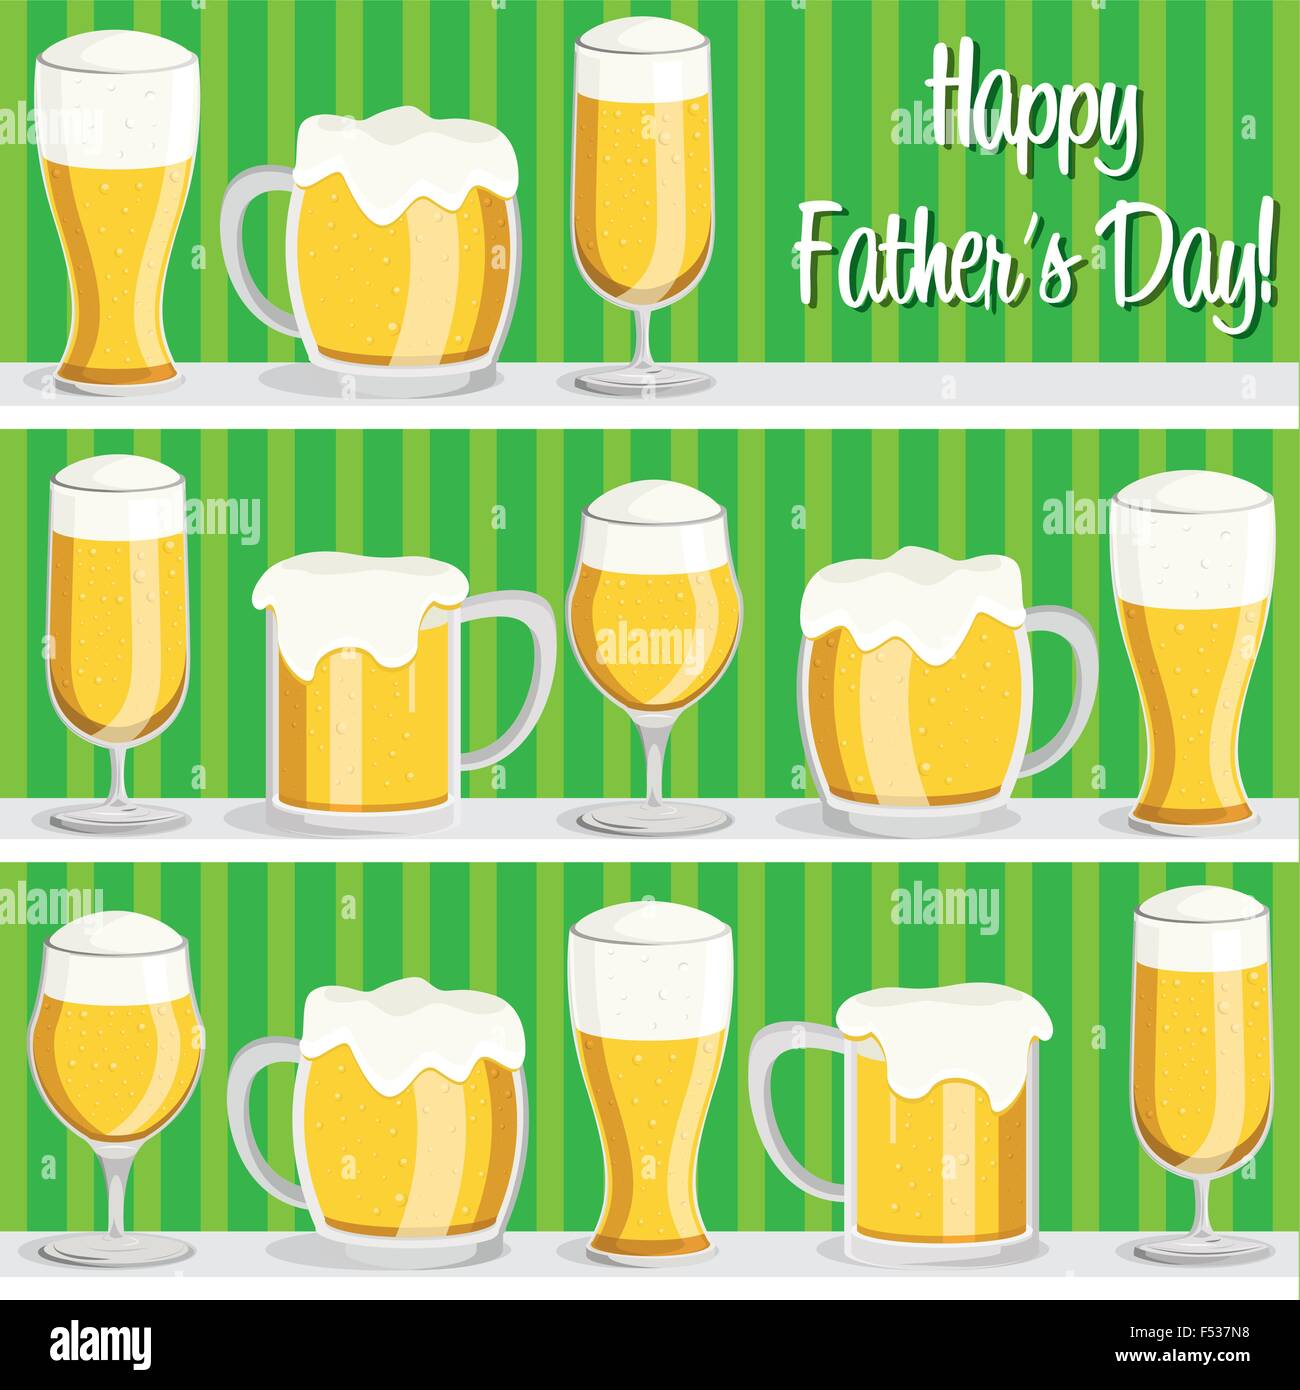 Happy Fathers Day Beer Card Stock Photos Happy Fathers Day Beer